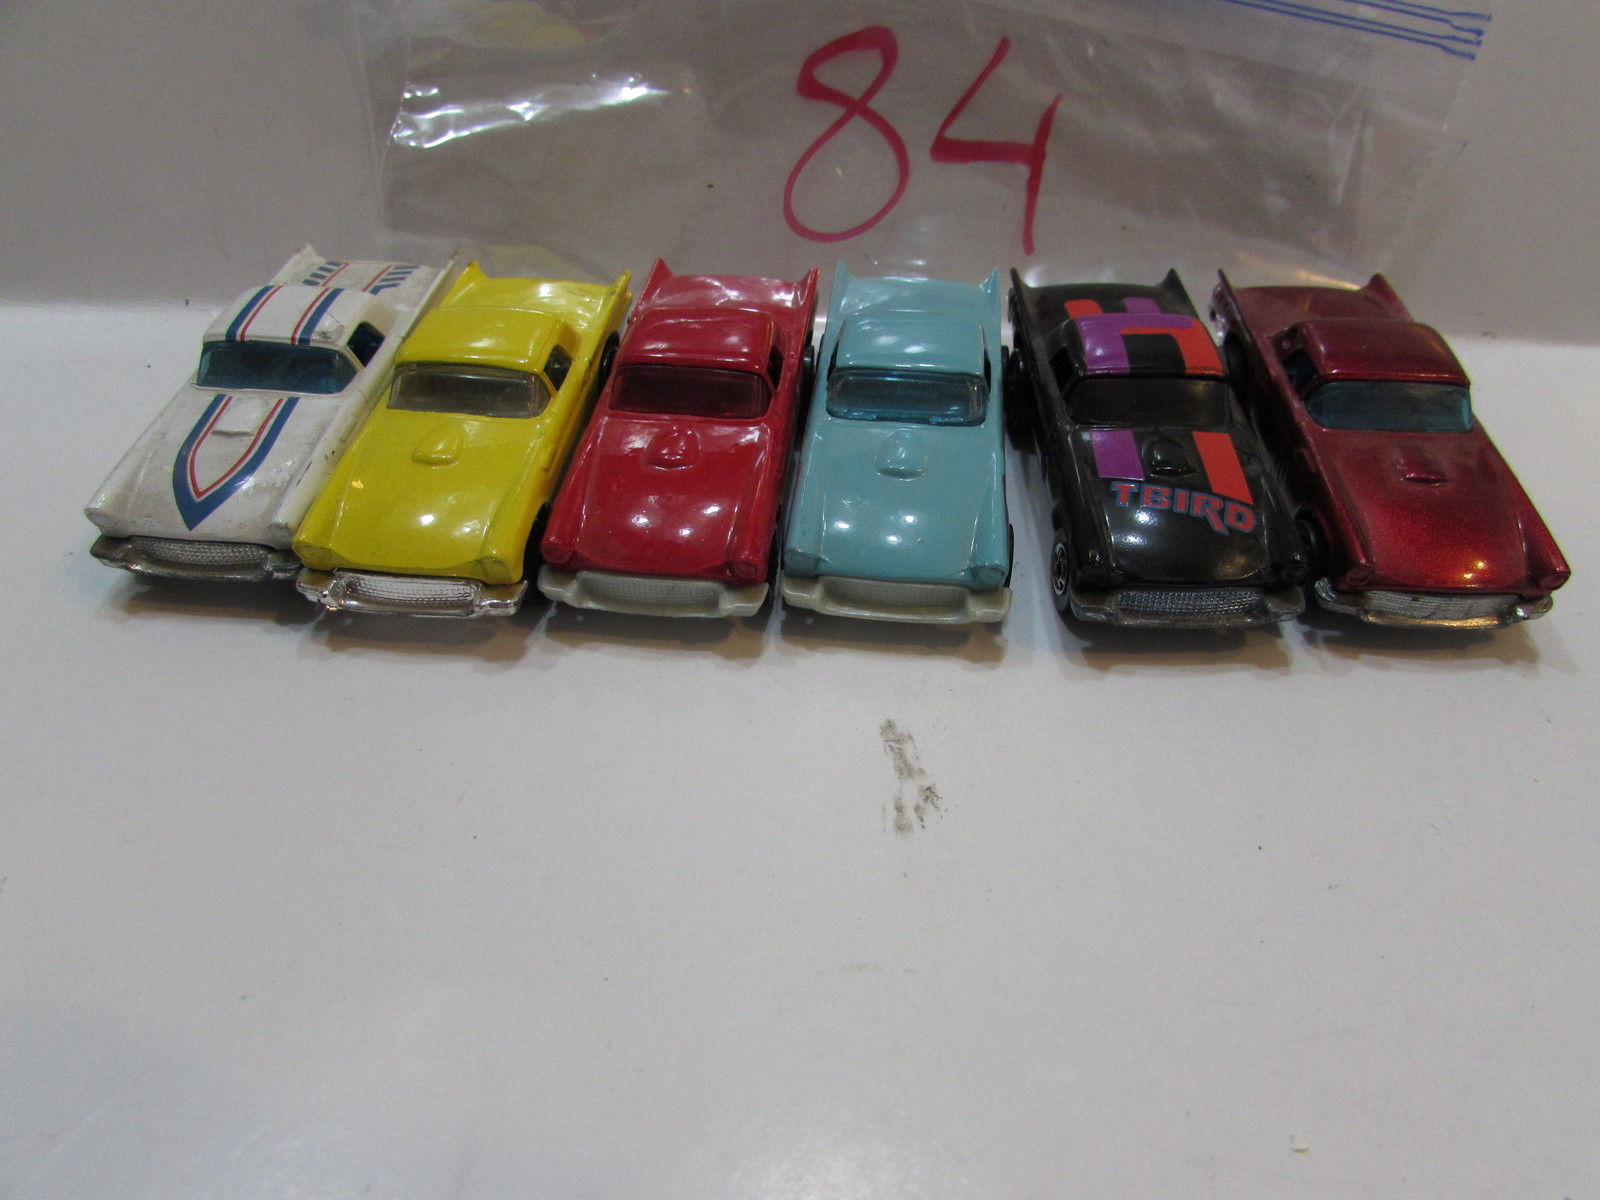 HOT WHEELS LOT OF 6 T - BIRD RED BLACK YELLOW 1977 HONG KONG / MALAYSIA BASE